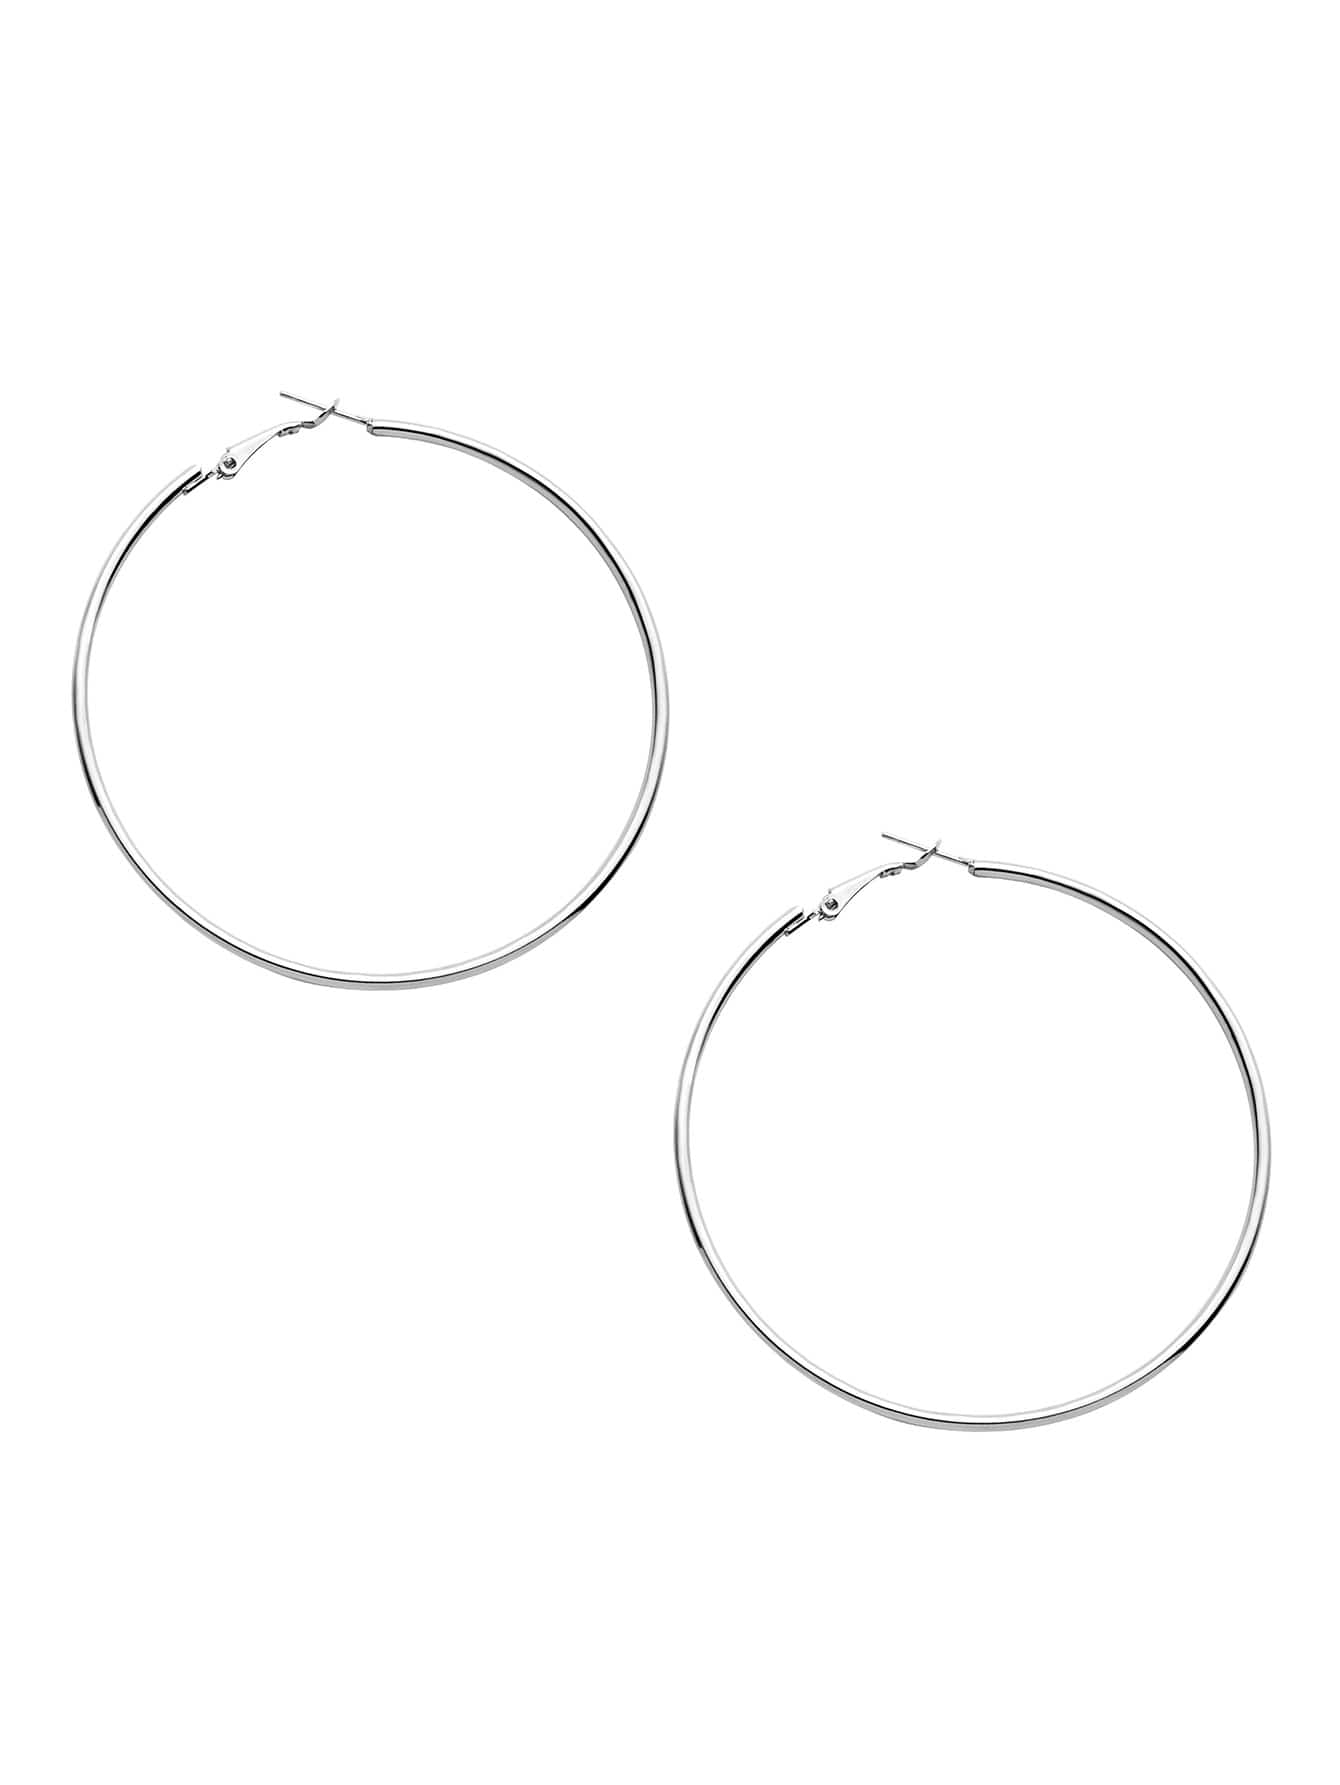 Silver Plated Simple Hoop Earrings silver plated bar dangle drop earrings